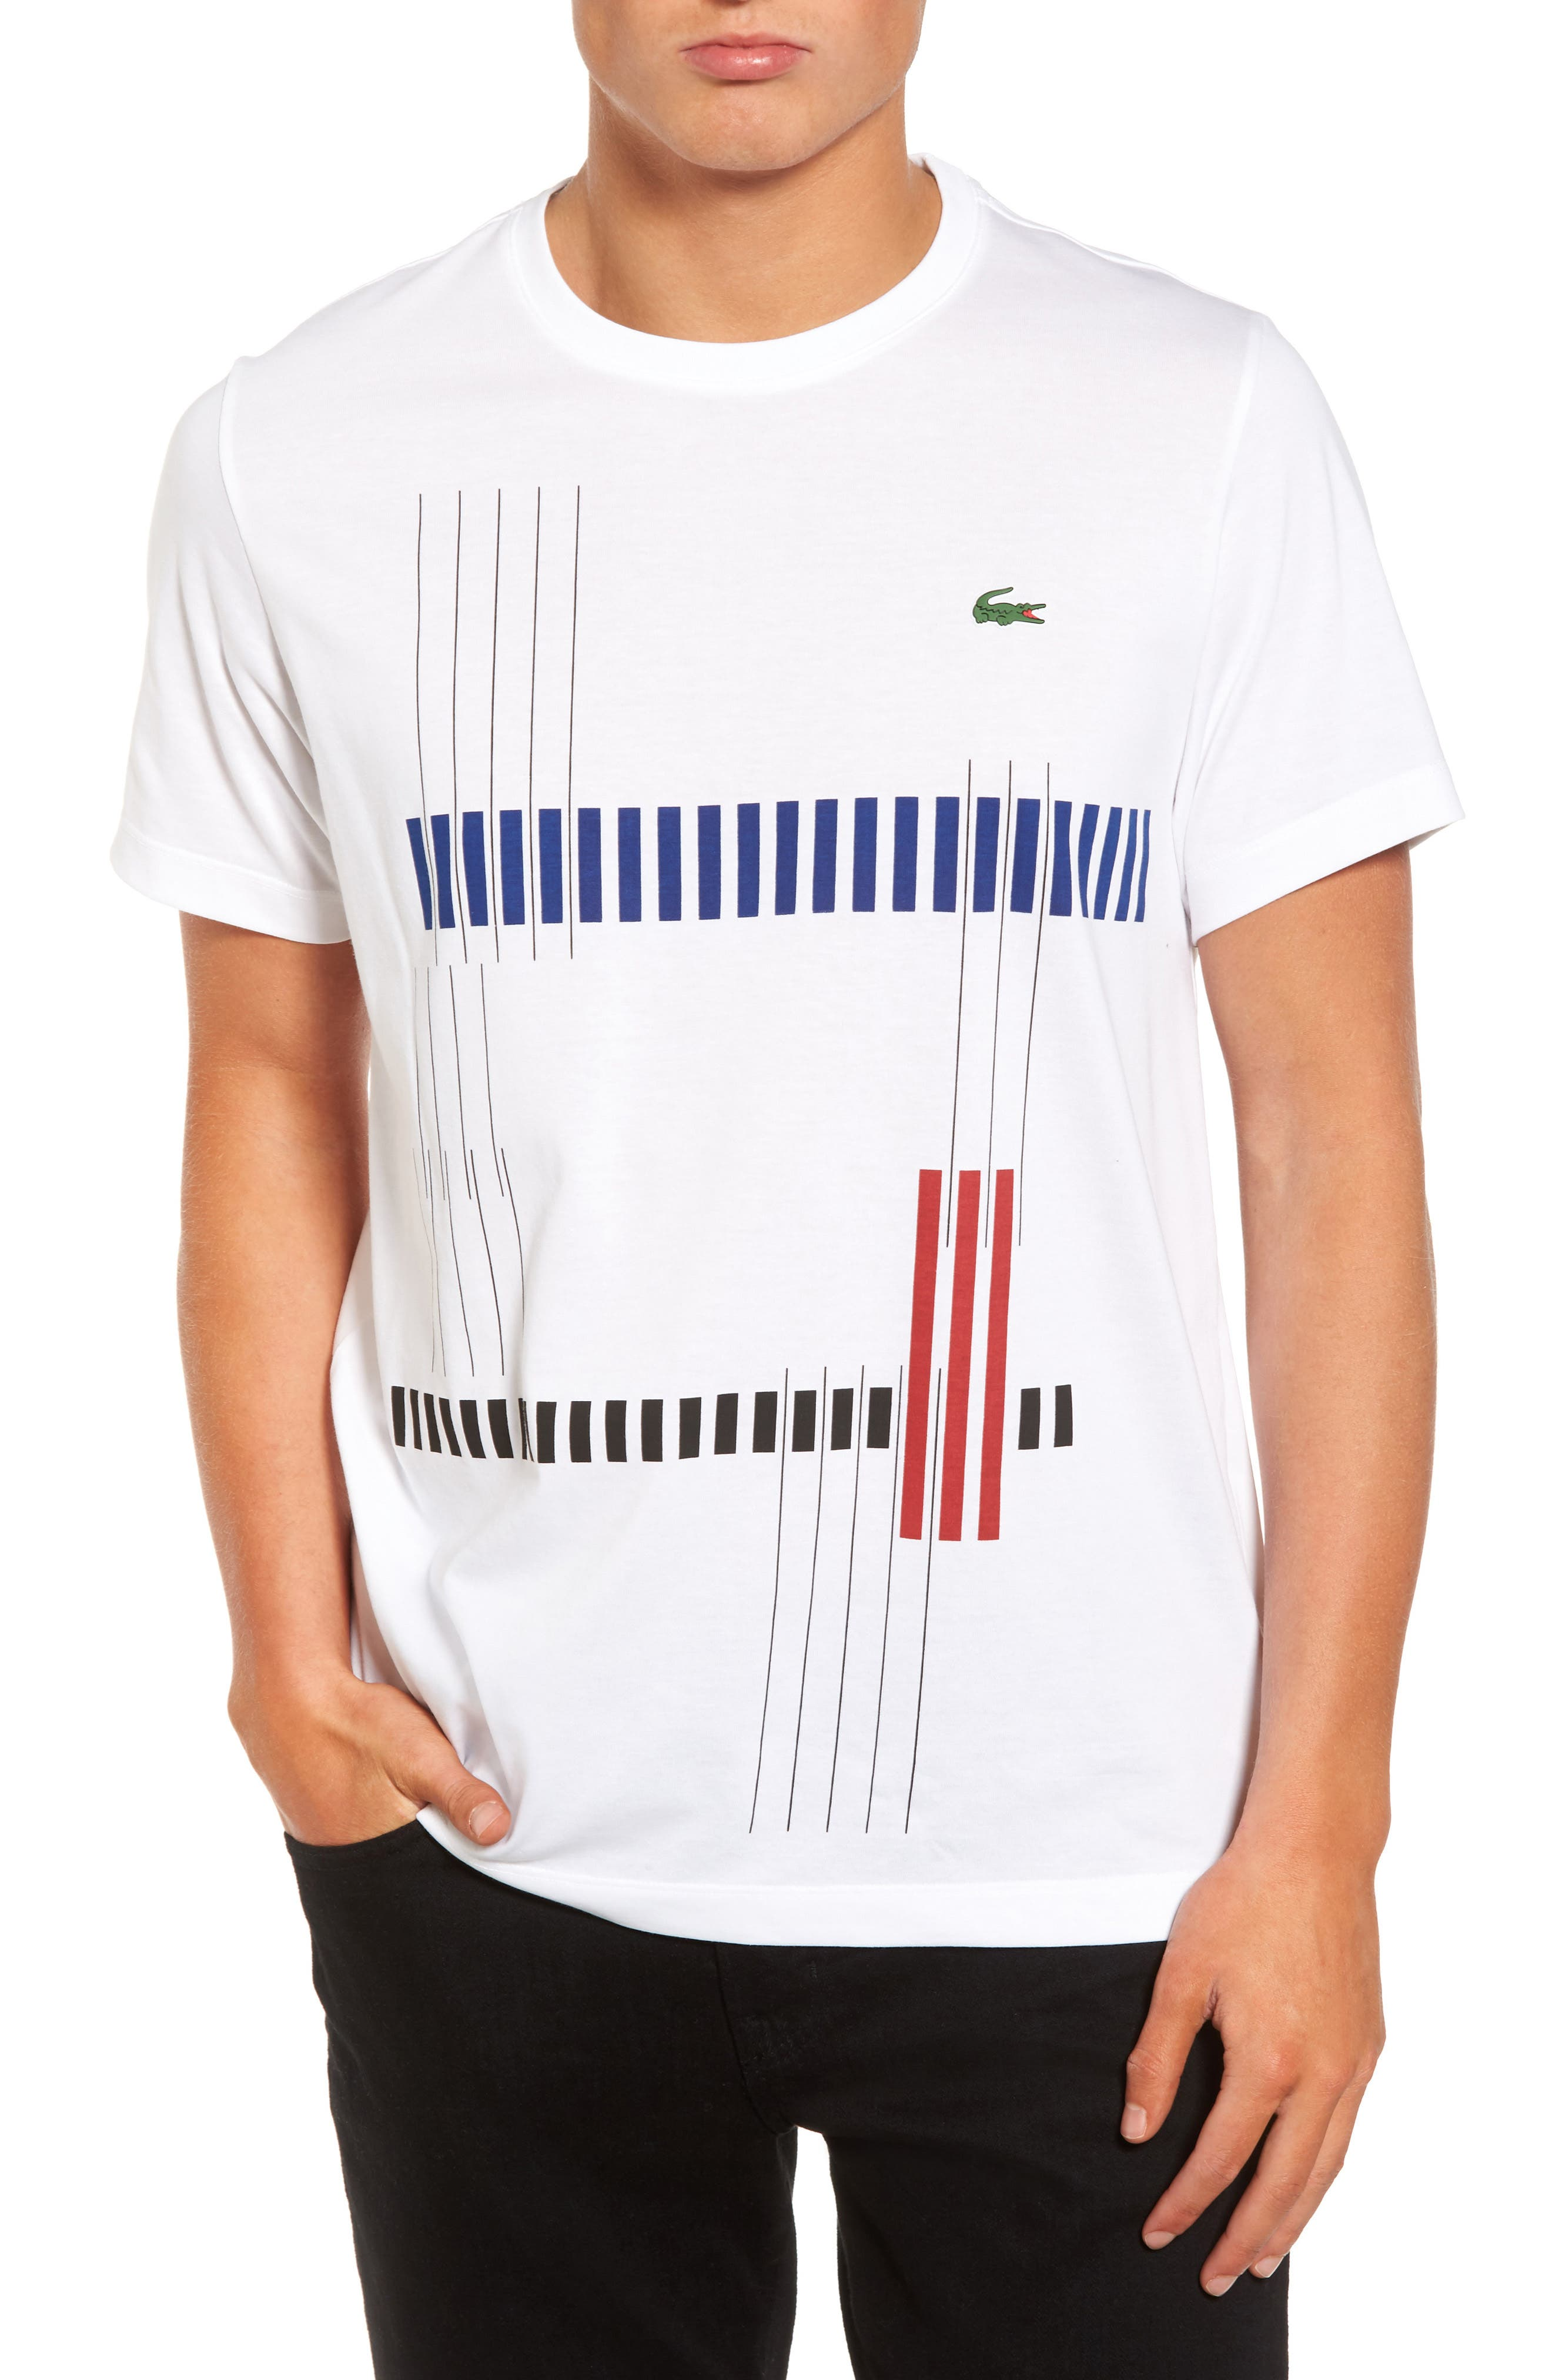 Alternate Image 1 Selected - Lacoste Tech Vertical Stripe Graphic T-Shirt